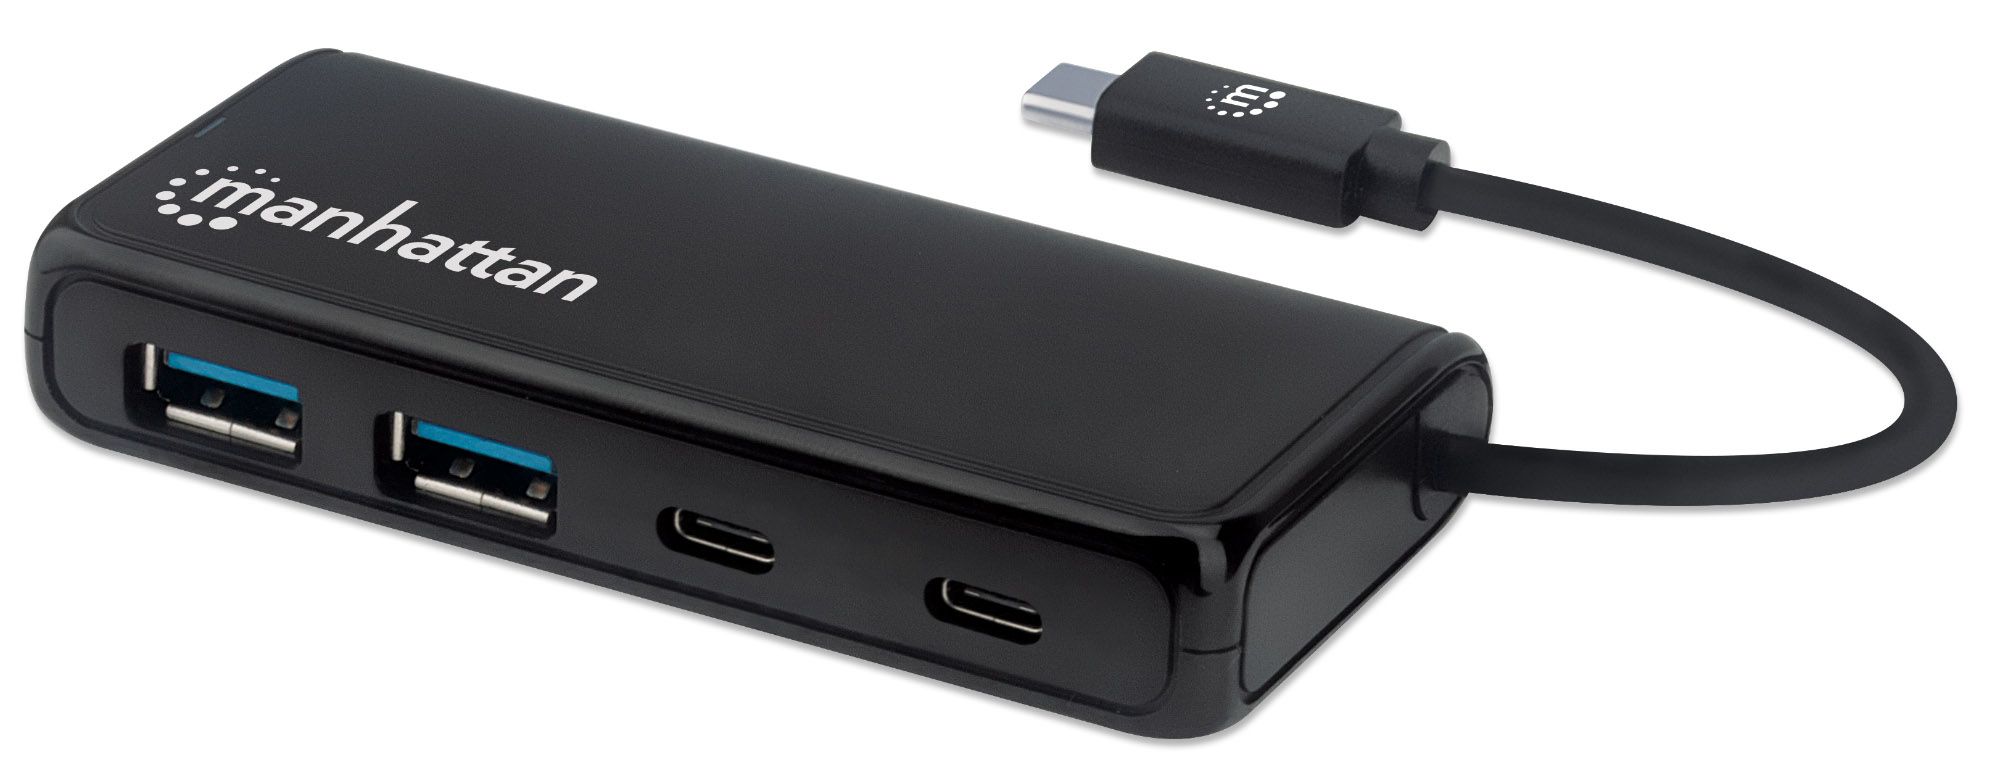 4-Port USB 3.2 Gen 1 Hub